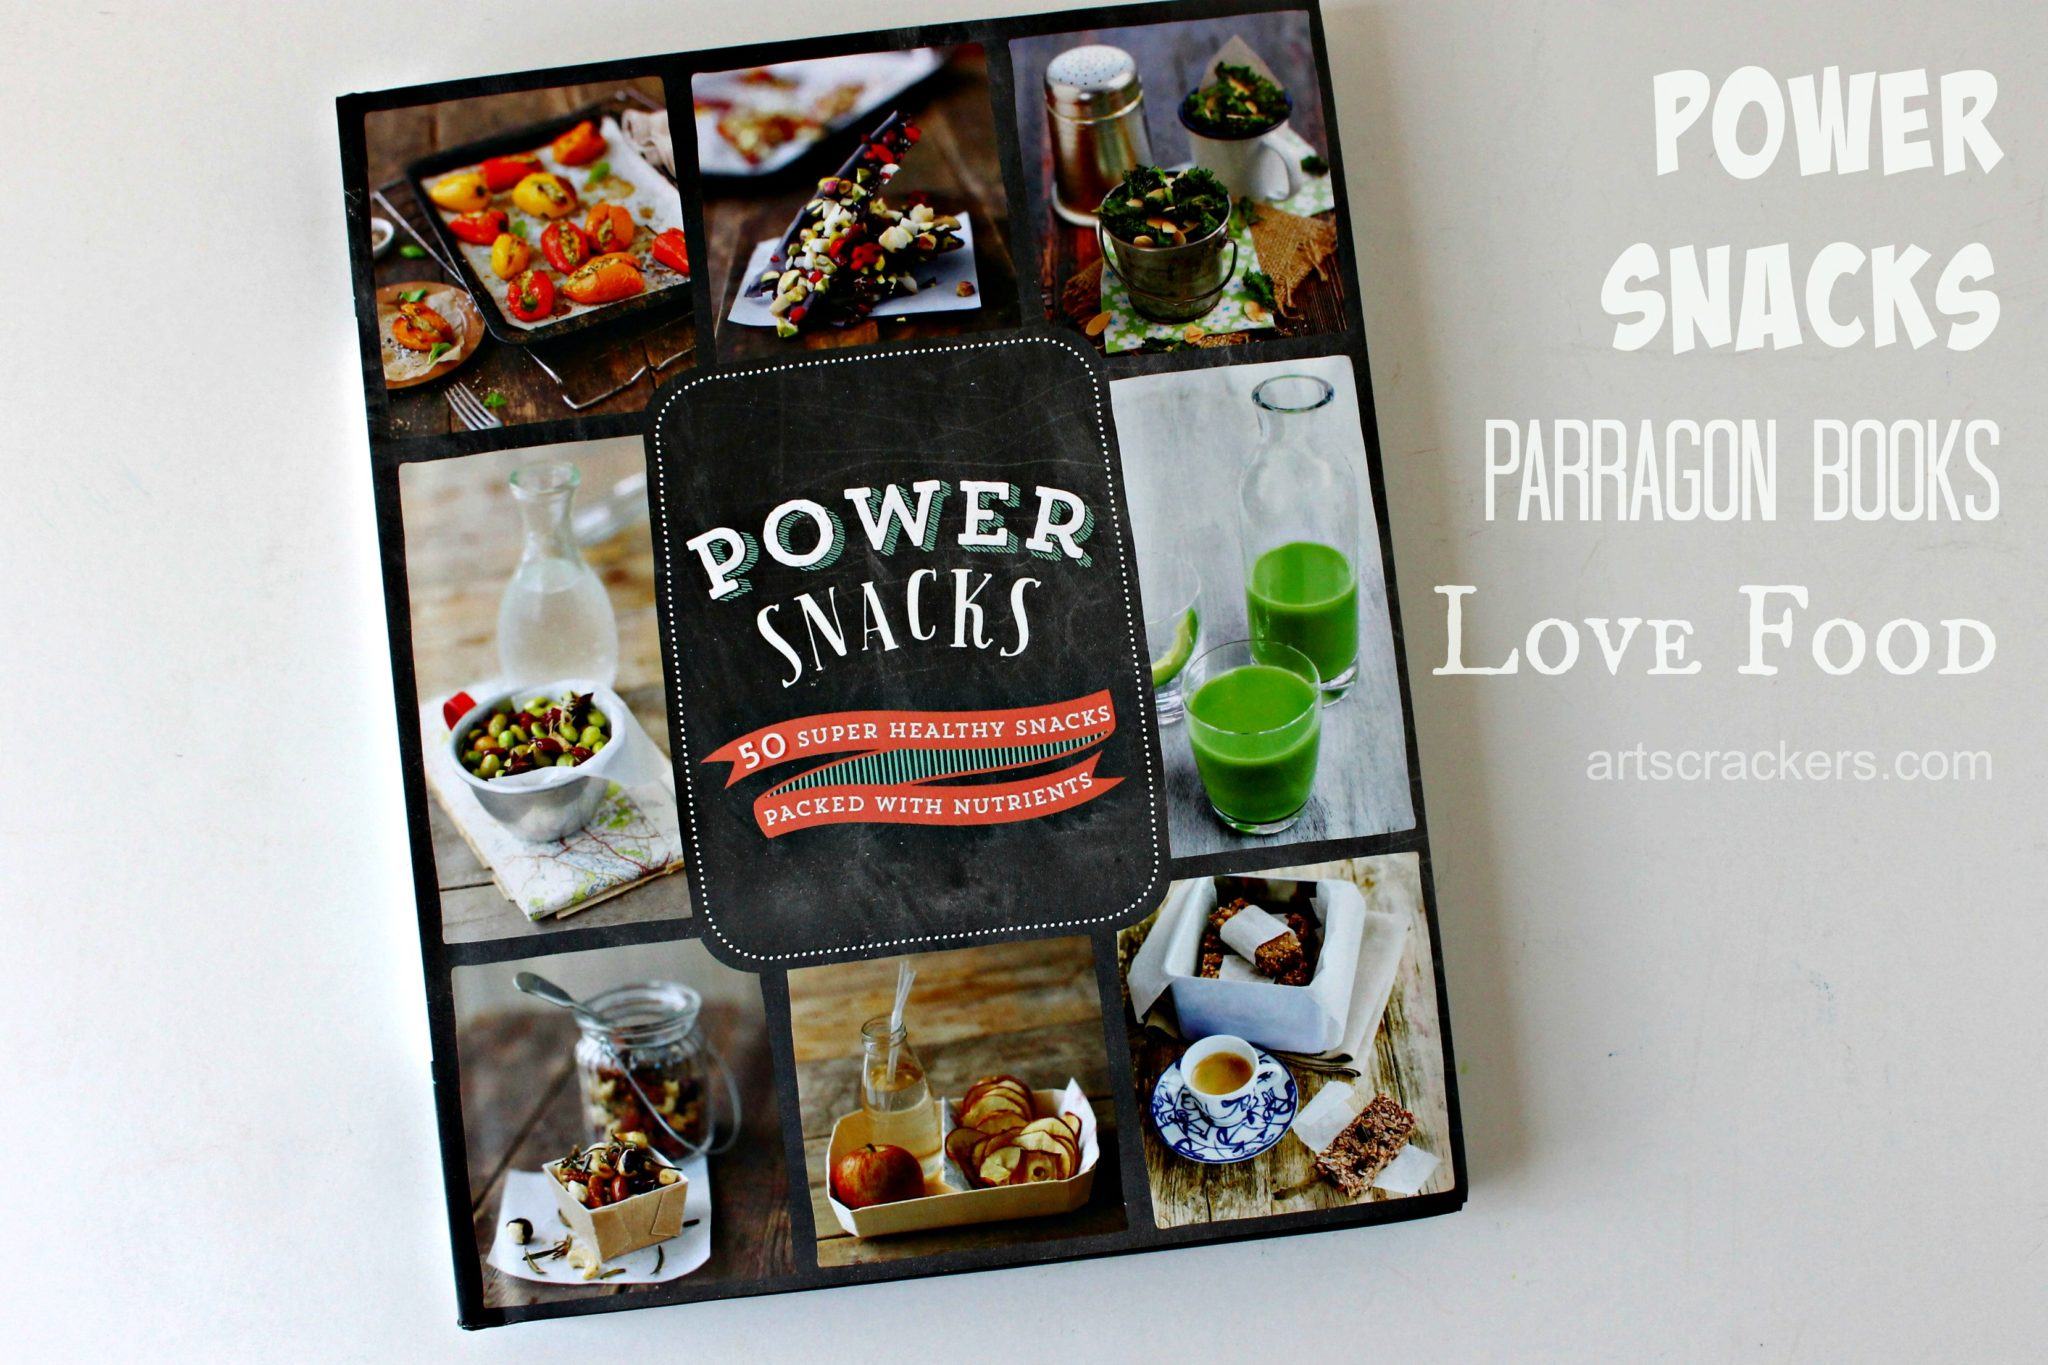 Power Snacks Parragon Books. Click the picture to read the review.